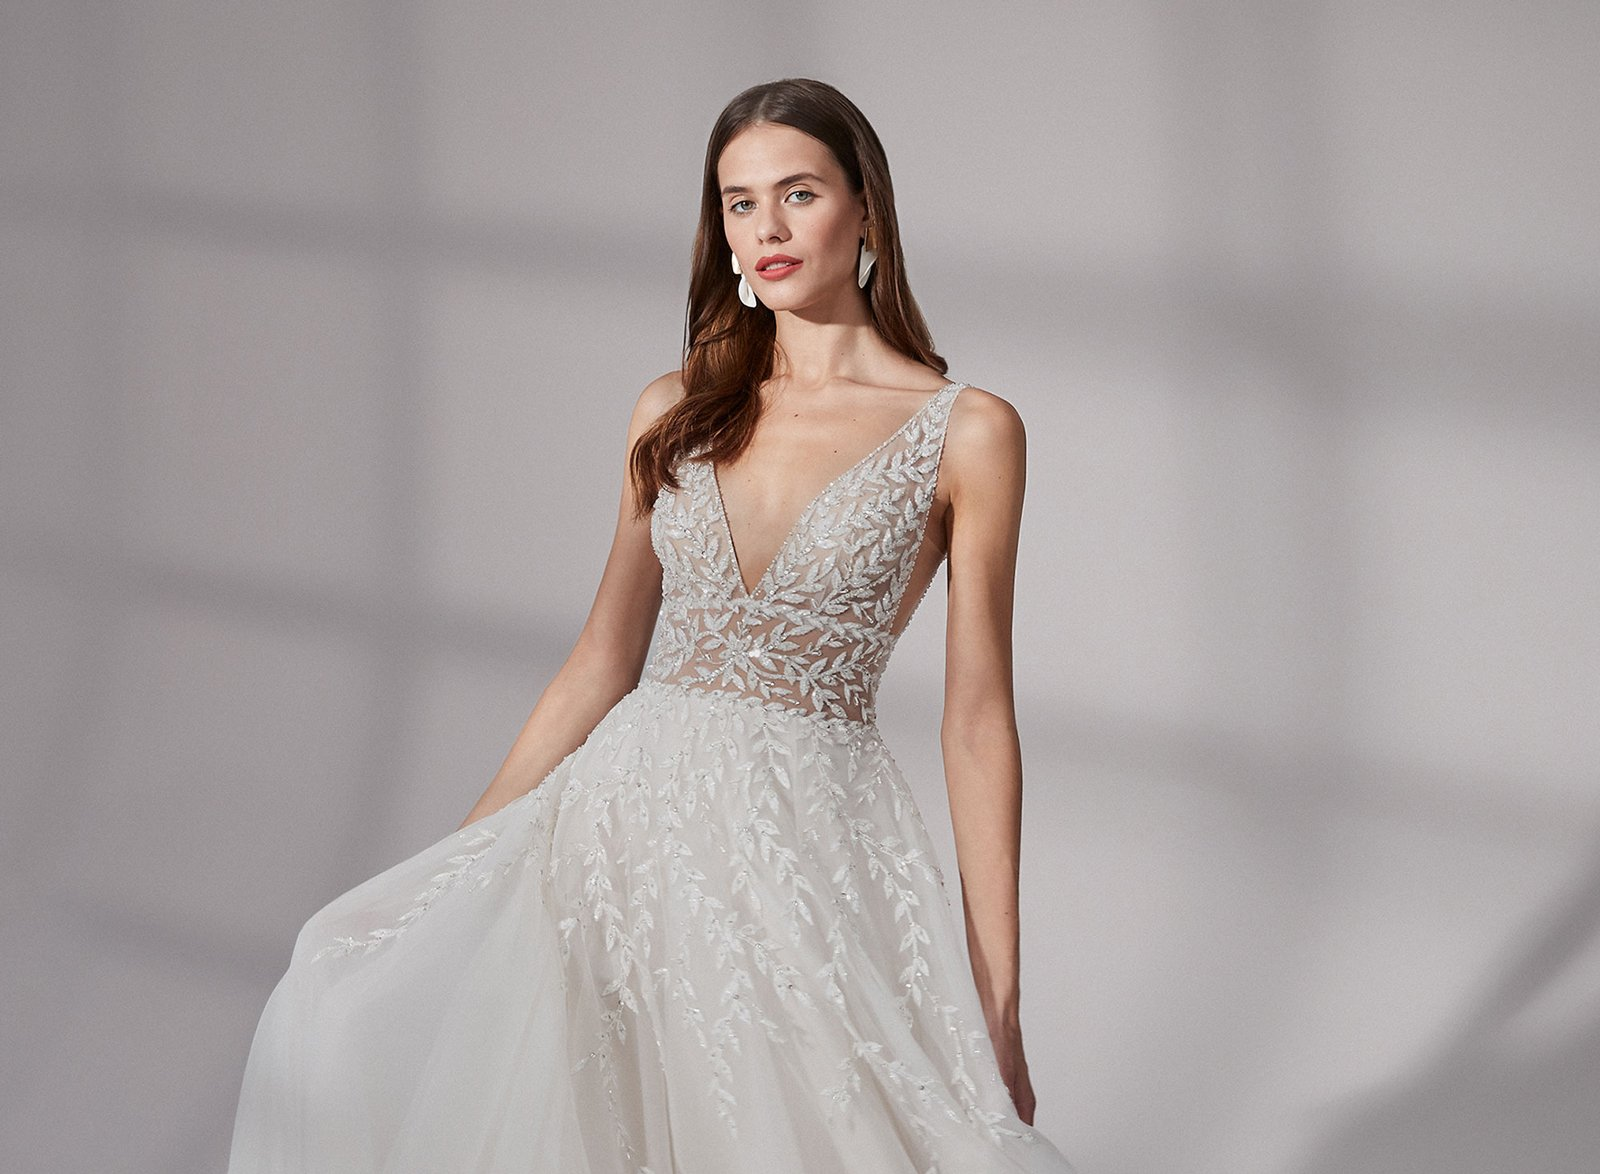 Justin Alexander Signature Cumberland Wedding Dresses in Denver at The Bridal Collection